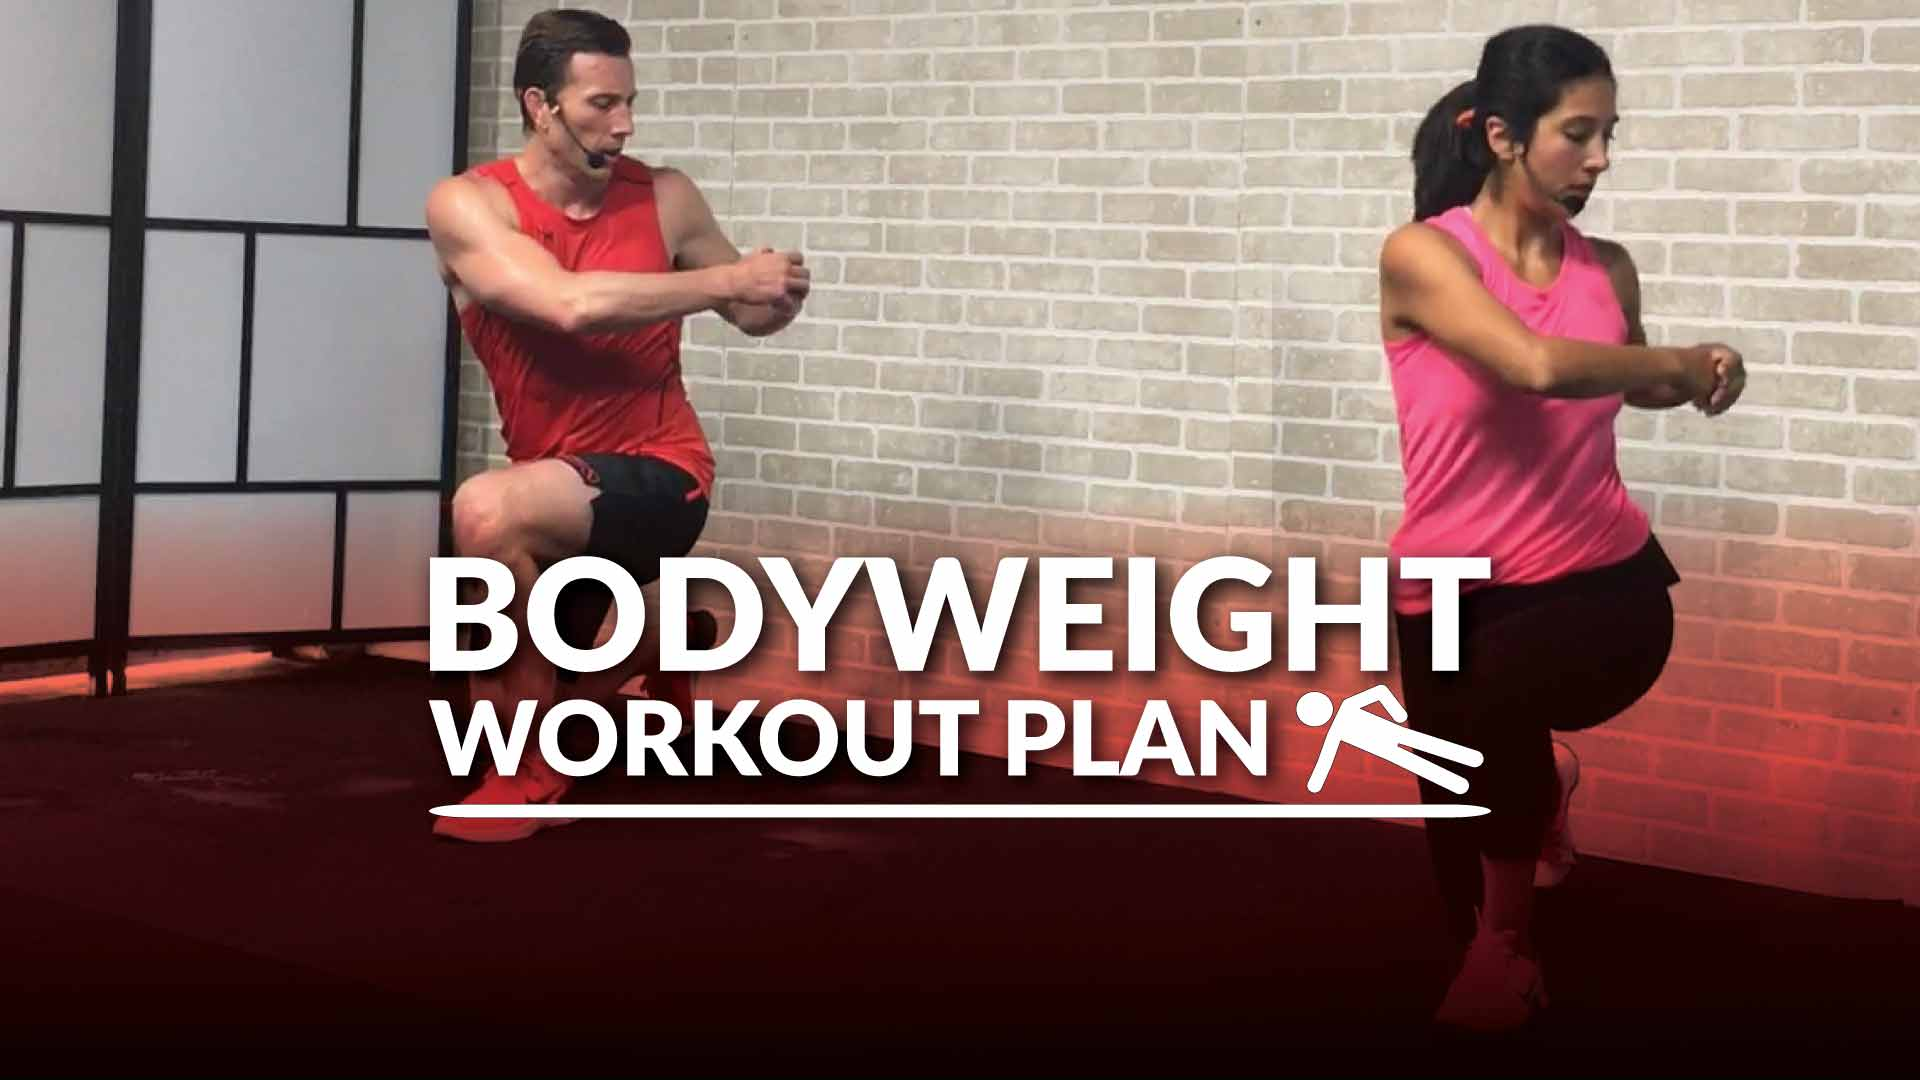 Bodyweight Workout Plan